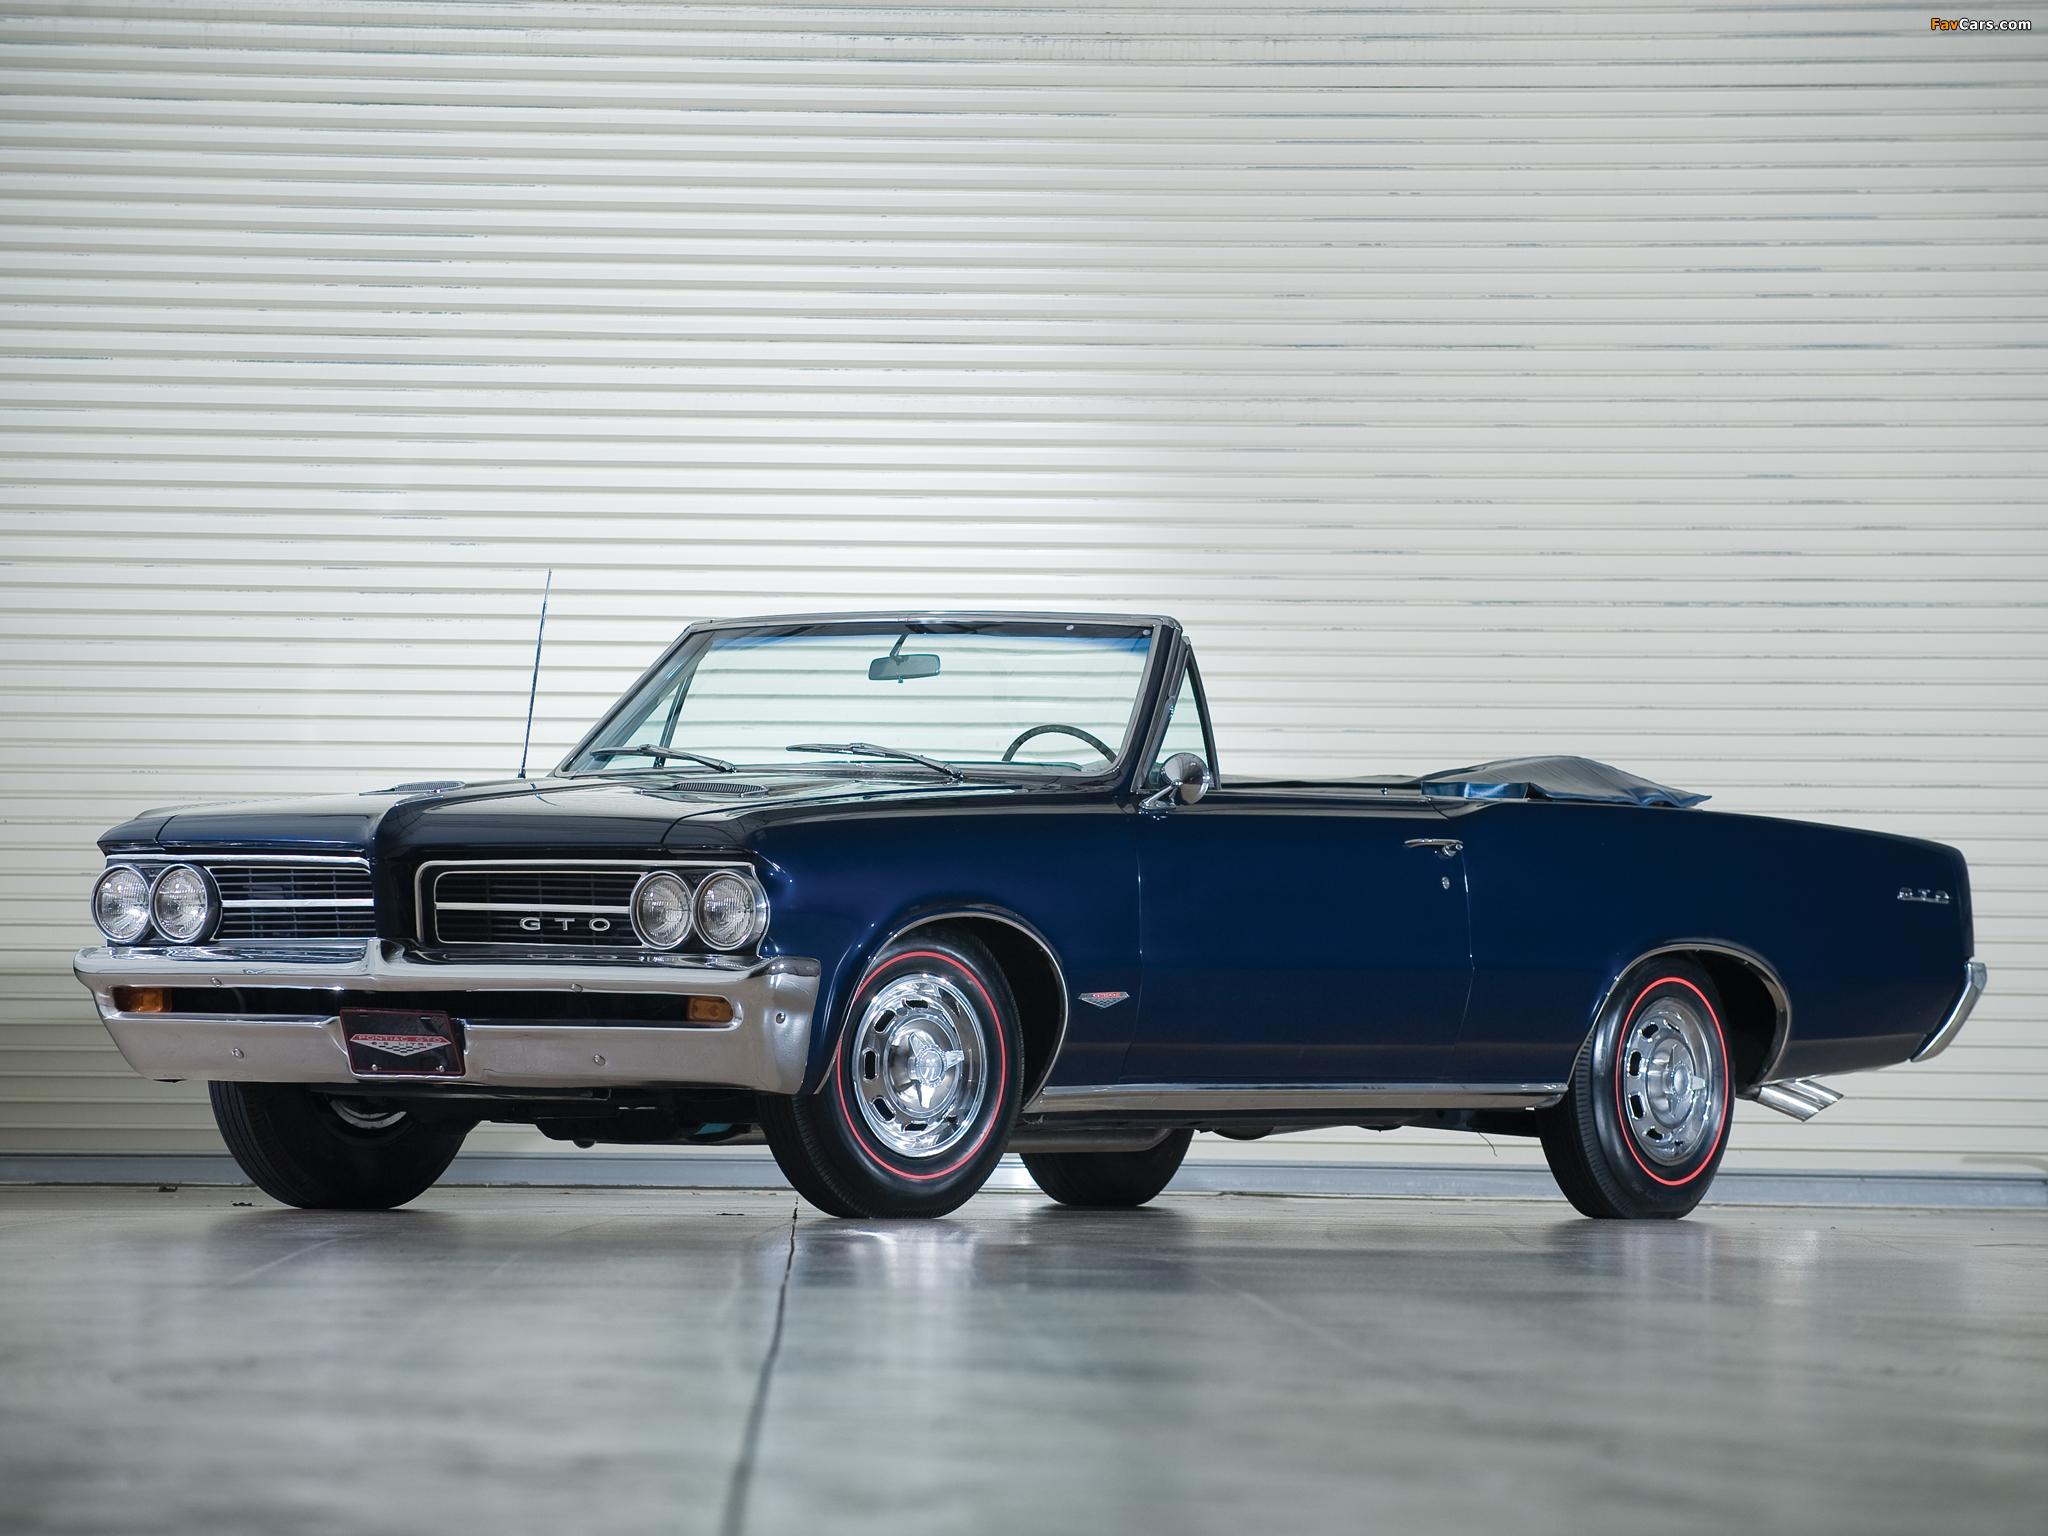 Pontiac Tempest Lemans Gto Convertible 1964 Wallpapers